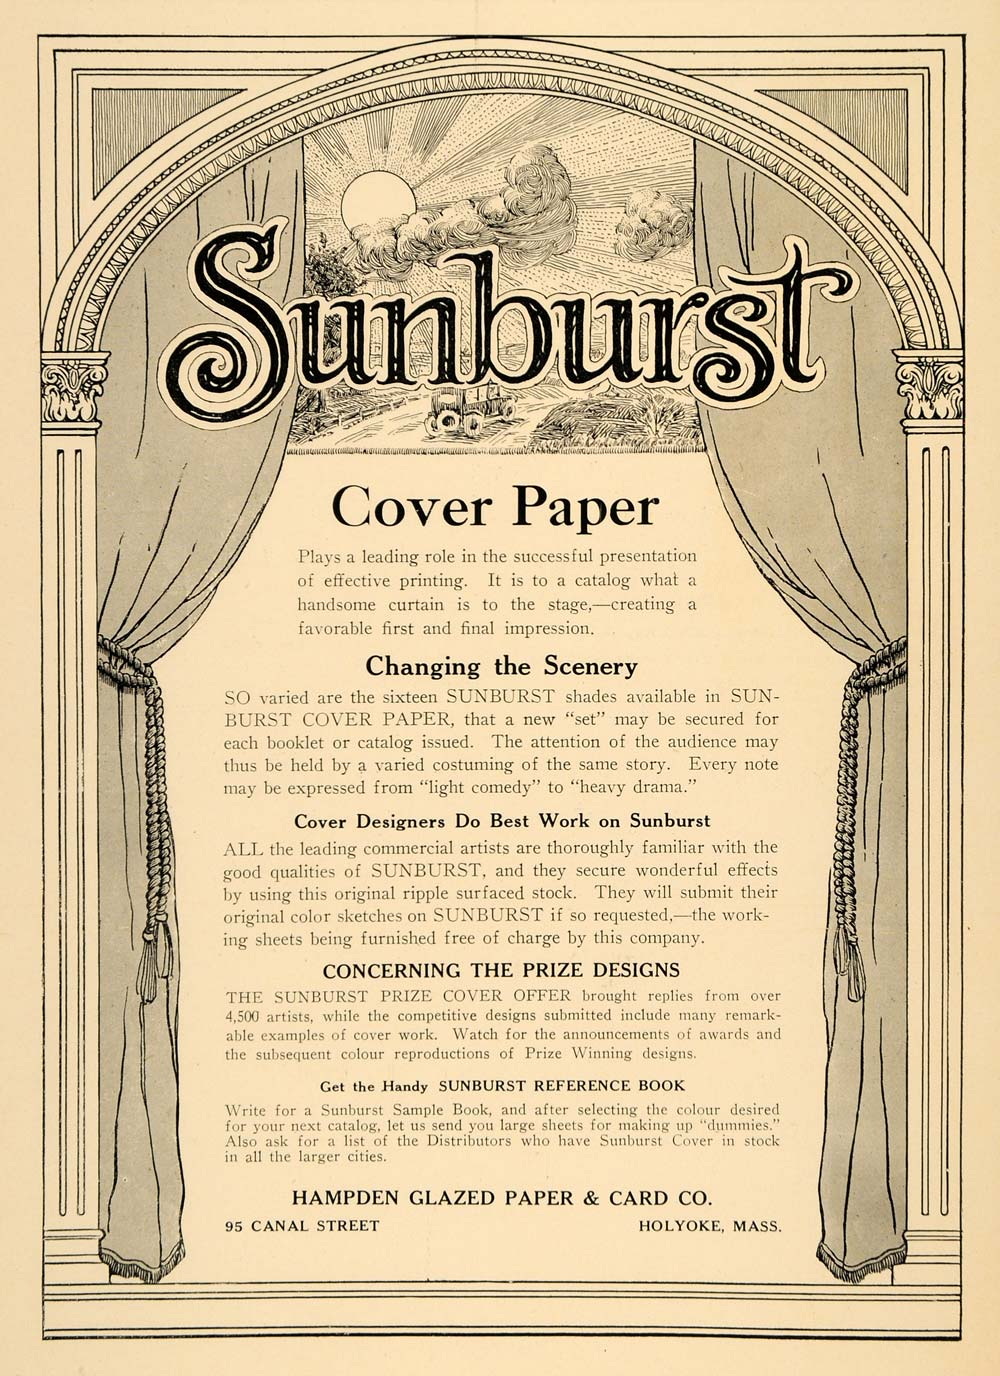 1921 Ad Sunburst Cover Paper Booklet Design Glazed Art - ORIGINAL INS2